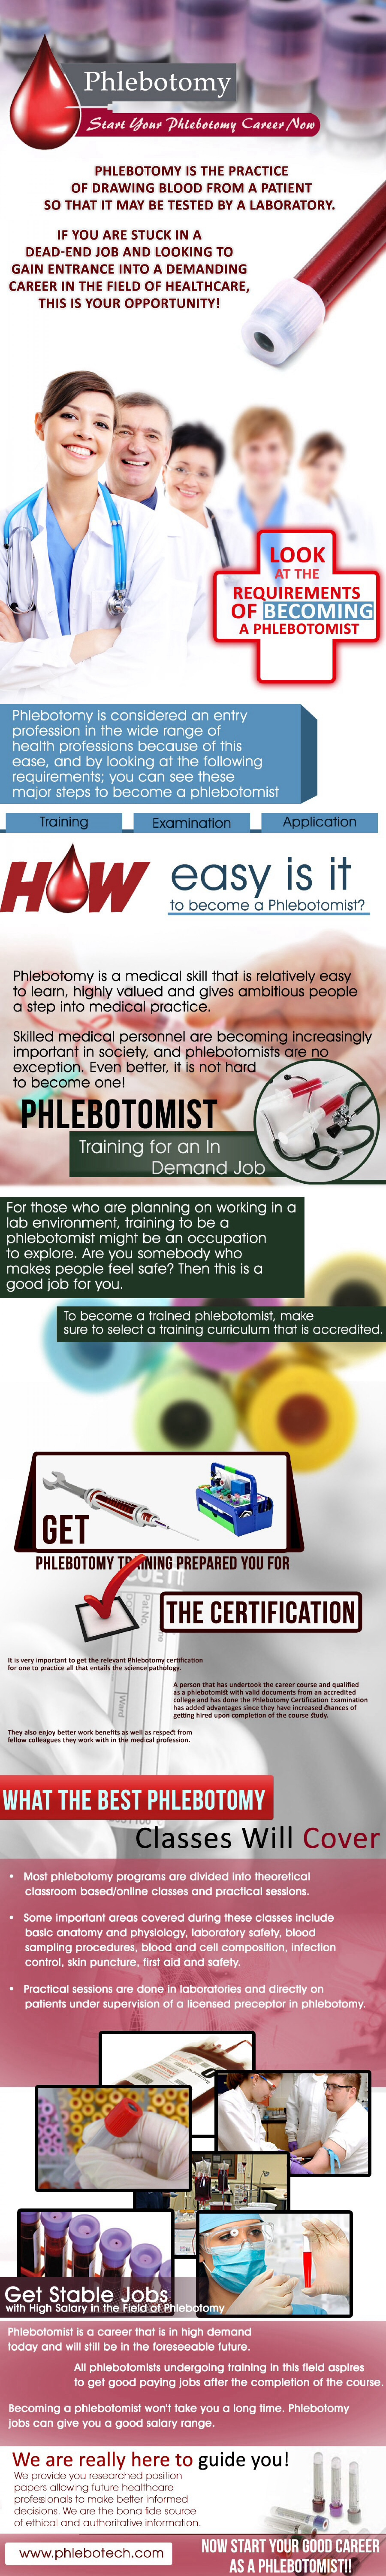 Phlebotomy Infographic